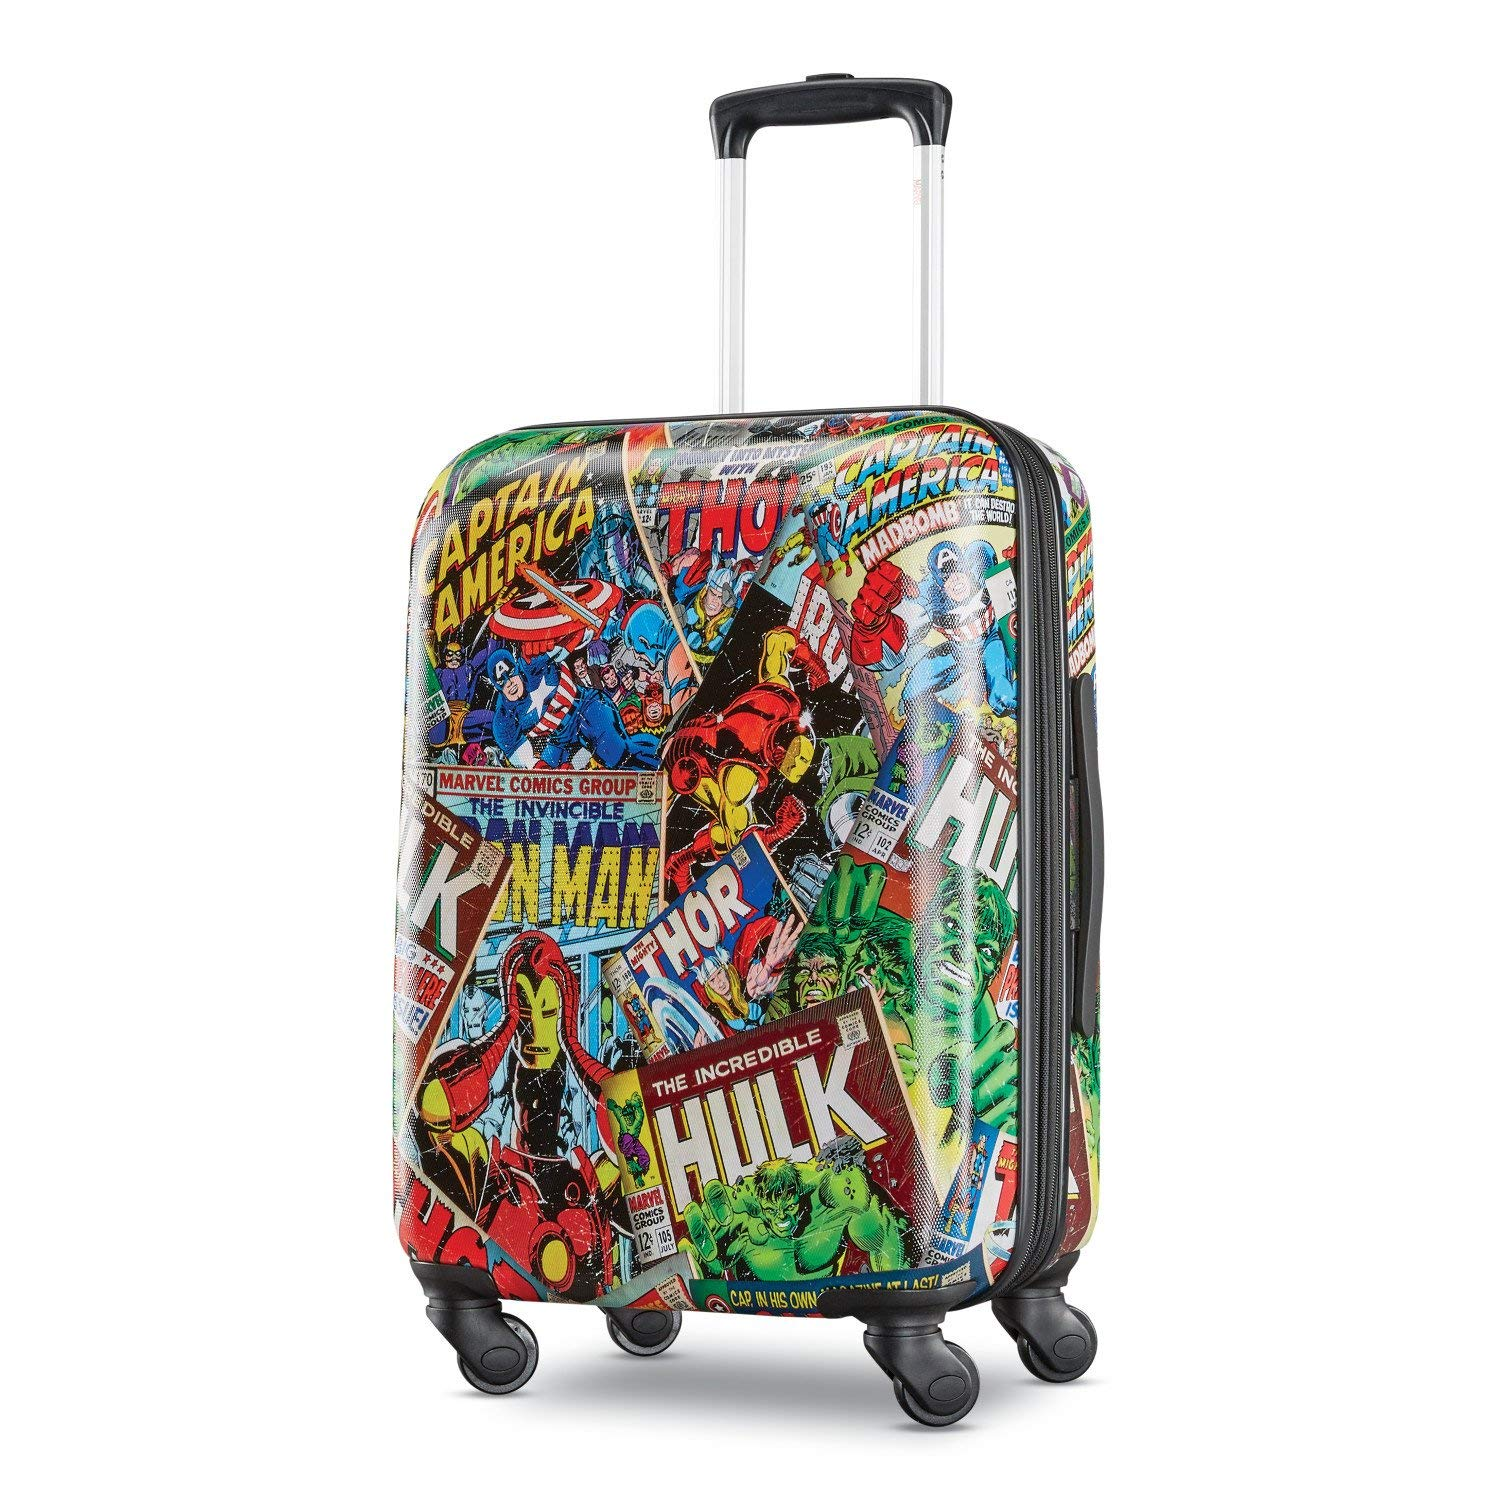 dff18bef6d Get Quotations · American Tourister Kids' Marvel Comics Hardside Spinner  21, Green/Red/Black